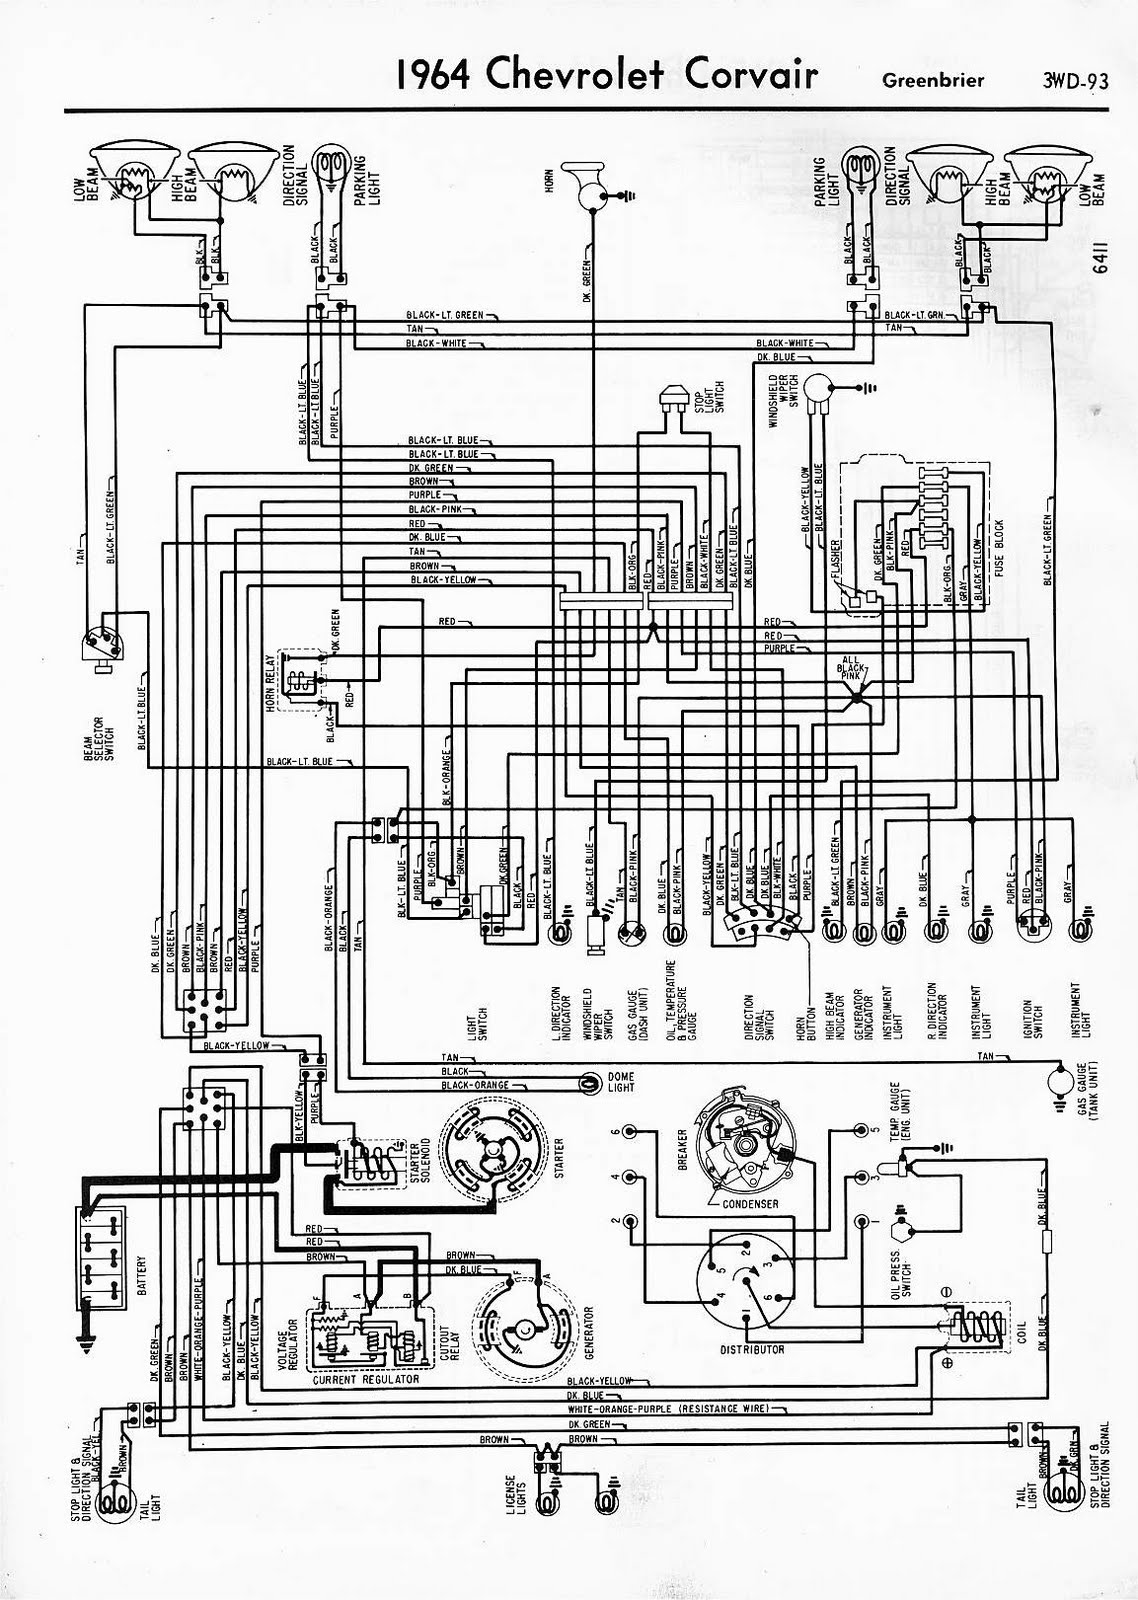 63 corvair wiring diagram wiring diagram for you 1965 corvair wiring diagram corvair fuse box wiring [ 1138 x 1600 Pixel ]